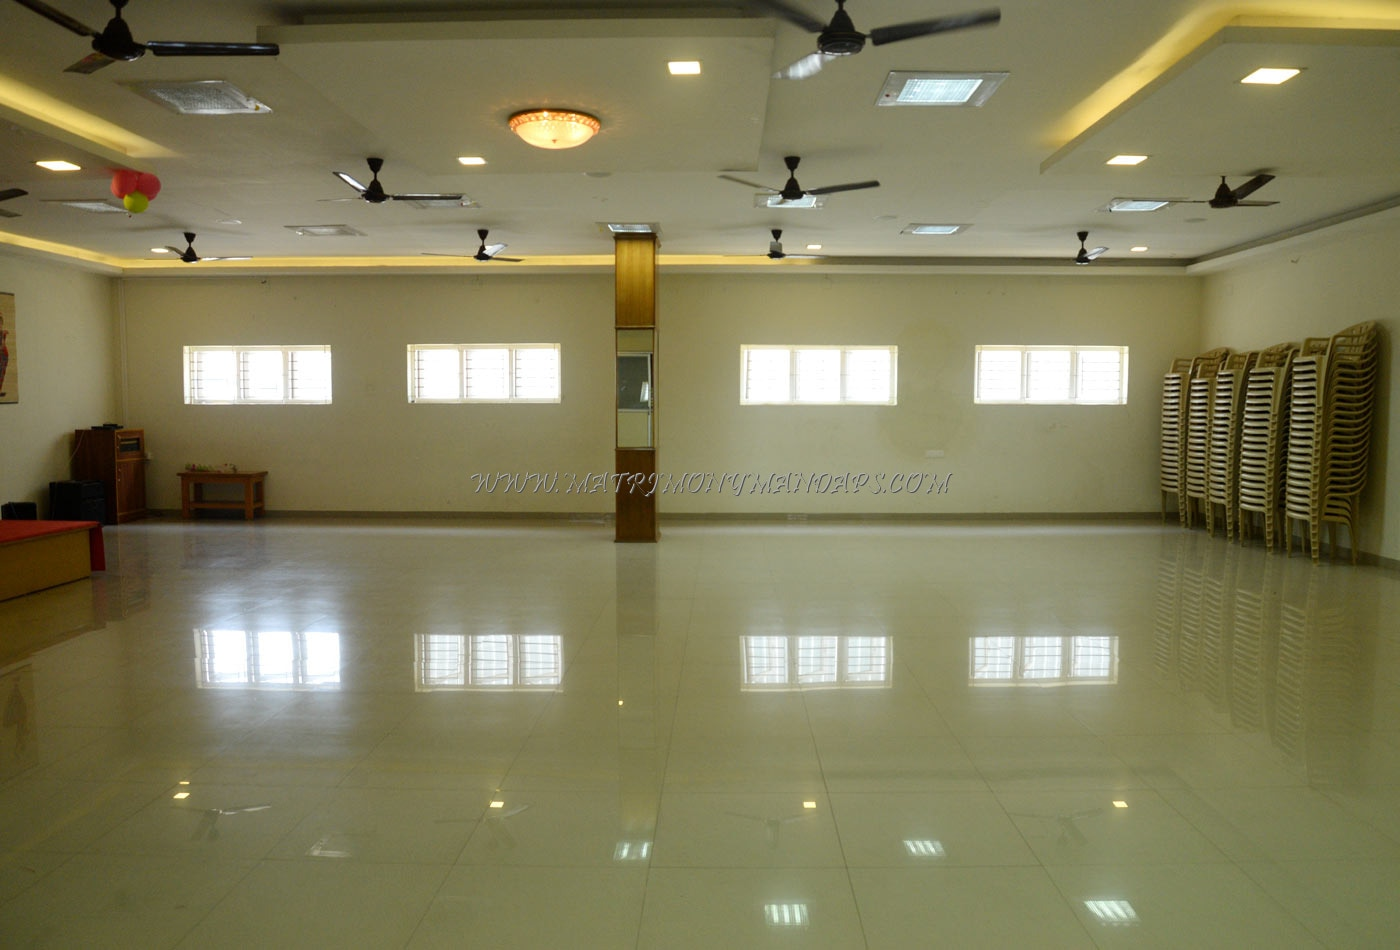 Find the availability of the Veda Banquet Hall in Nanjundapuram, Coimbatore and avail special offers